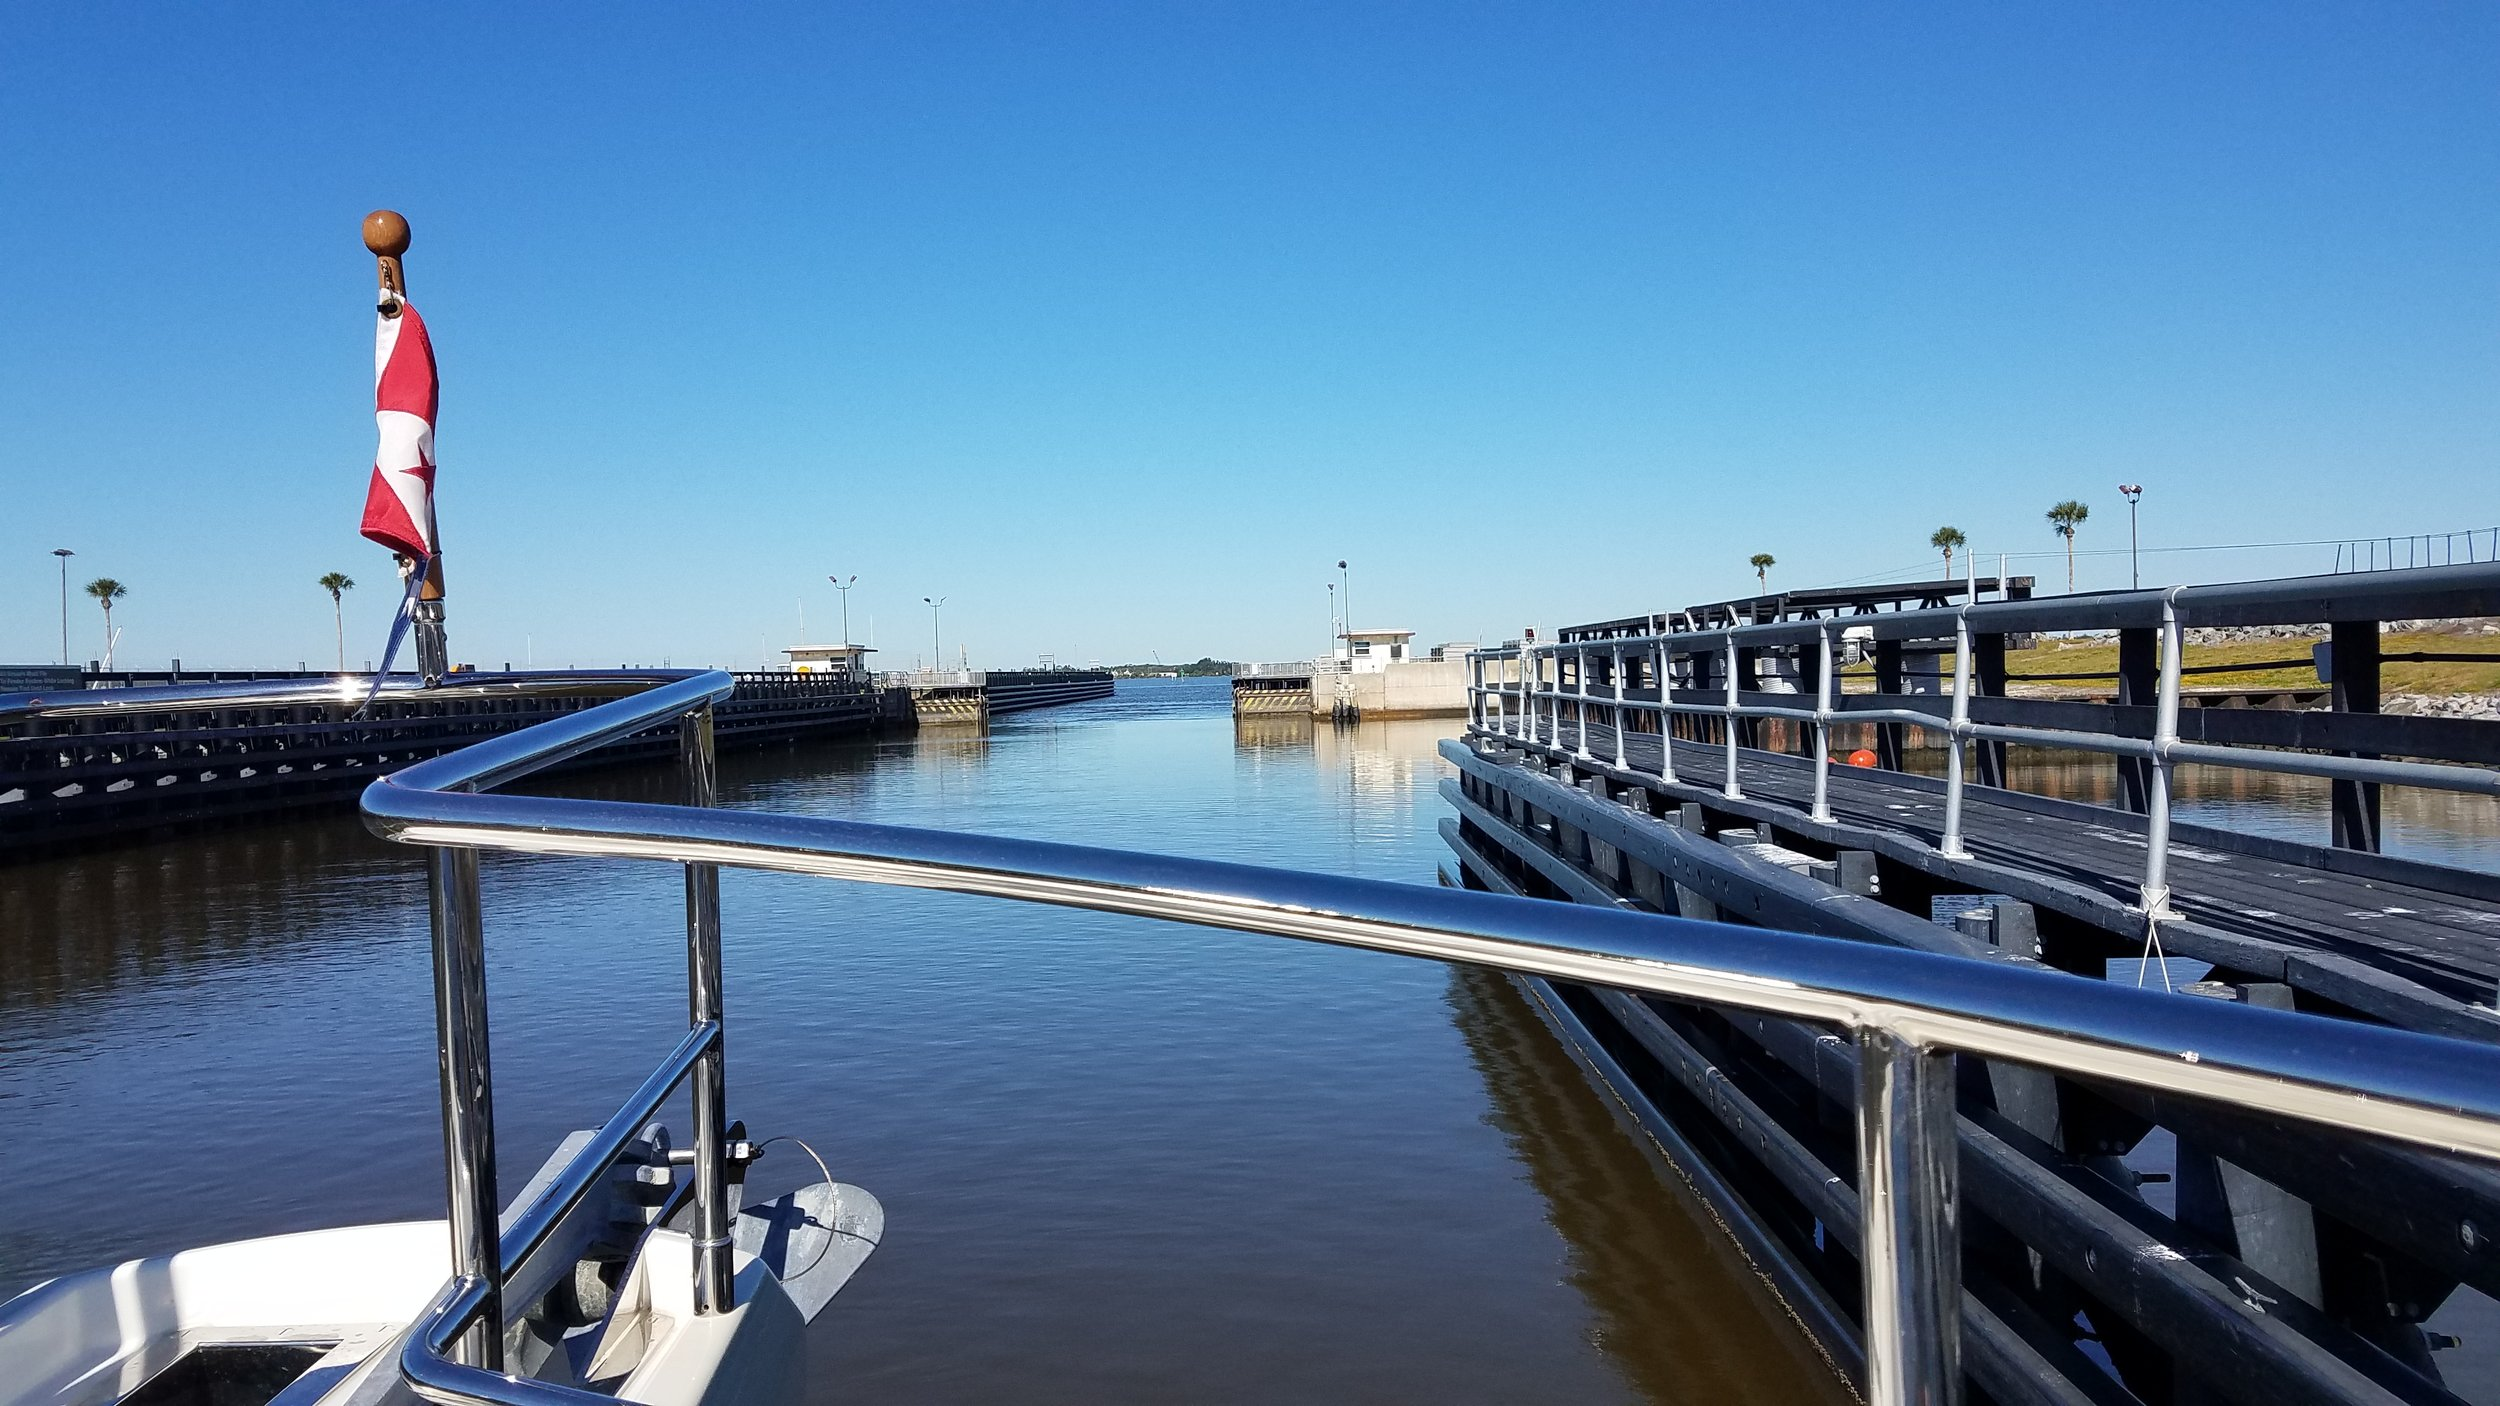 Our first lock at Cape Canaveral heading to the ICW